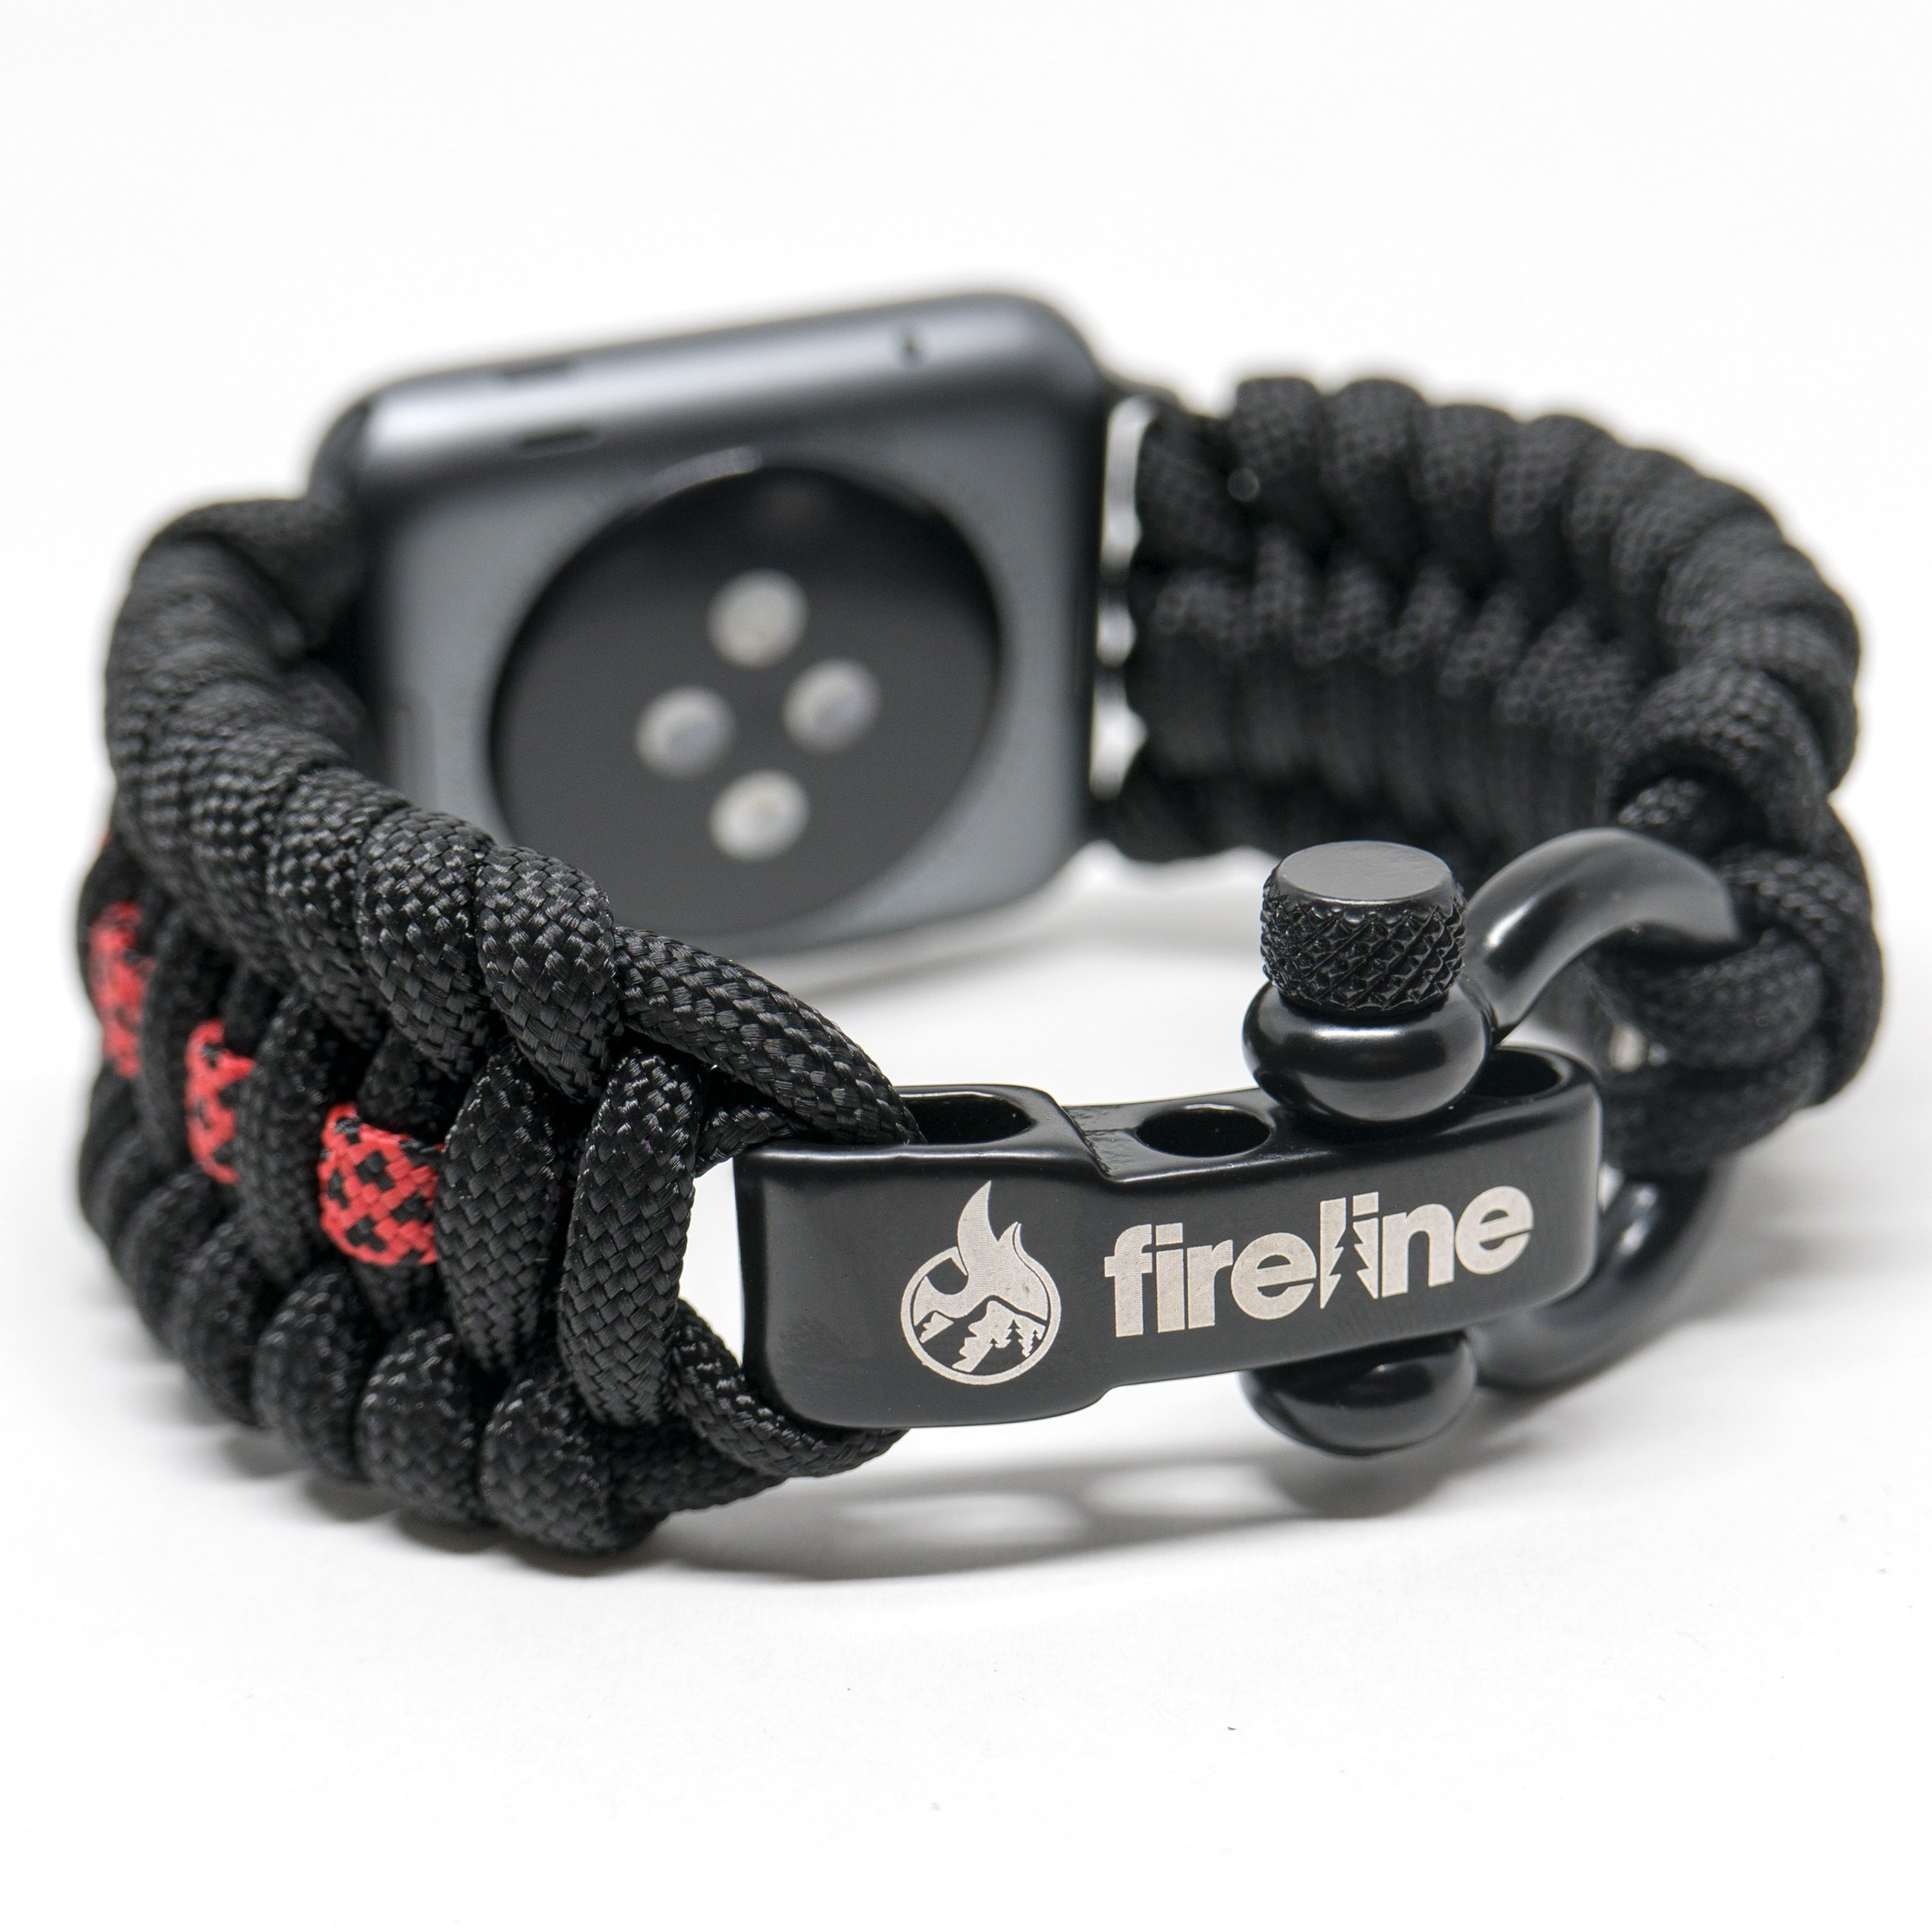 FireLine Paracord Watch Band for 42mm and 44mm Apple Watch, Replacement Strap with Rugged Outdoor Survival Stainless Steel Shackle and 550 Paracord - Thin Red Line (Large)